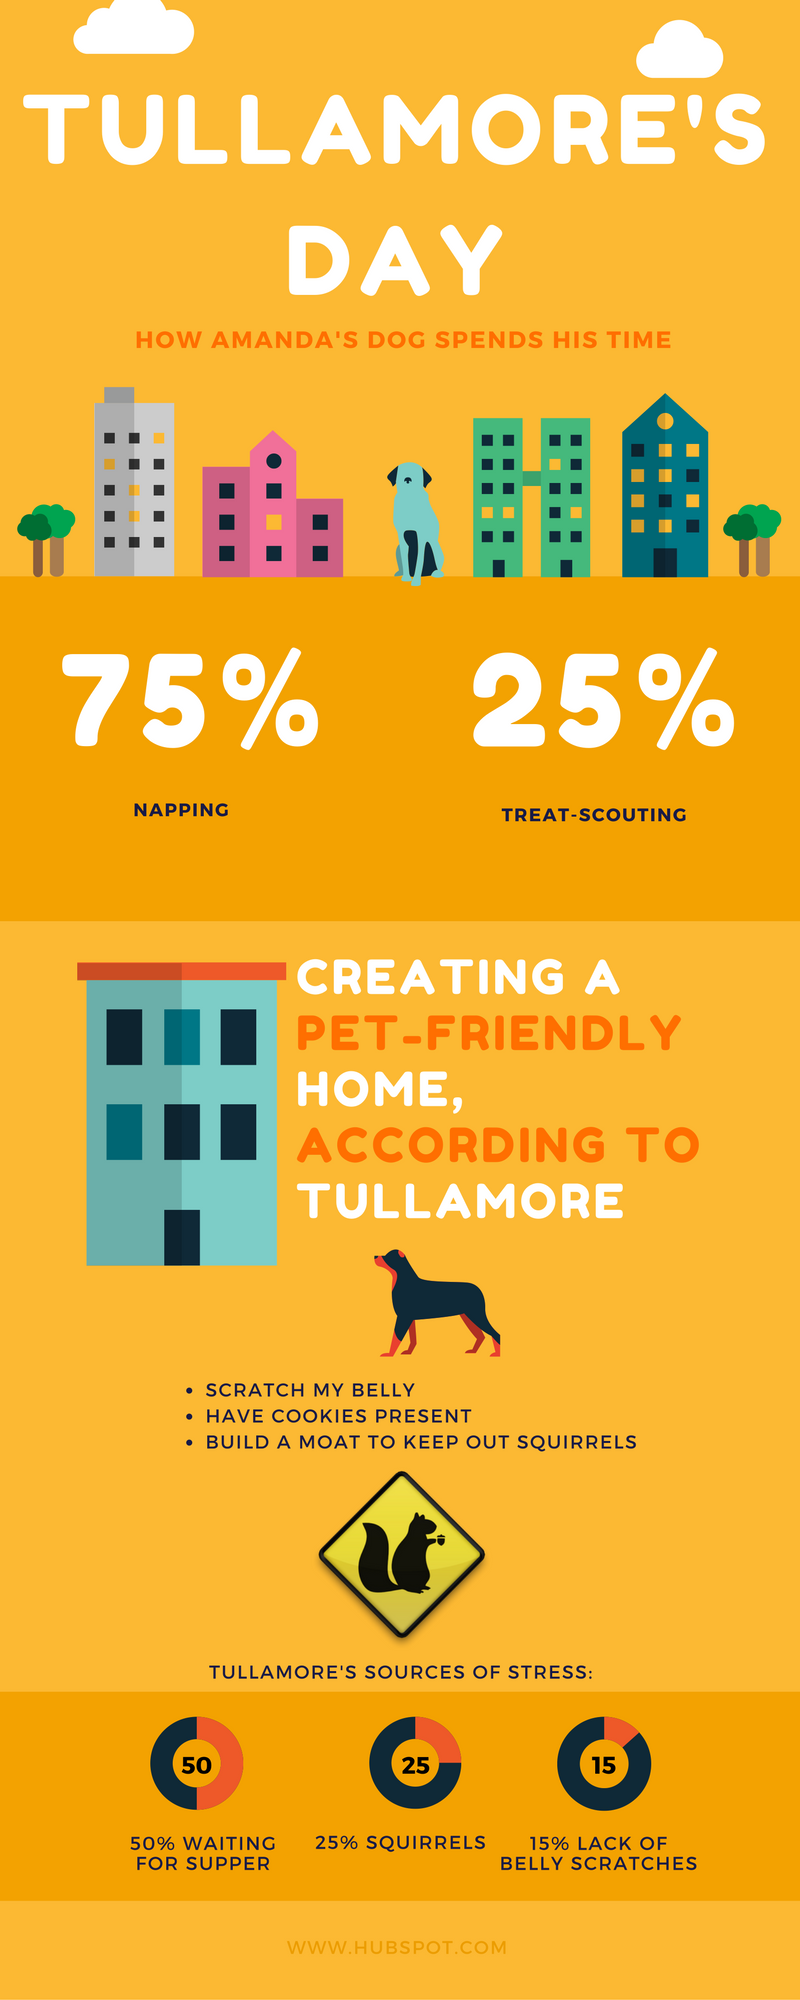 Tullamores_Day_Infographic_2.png